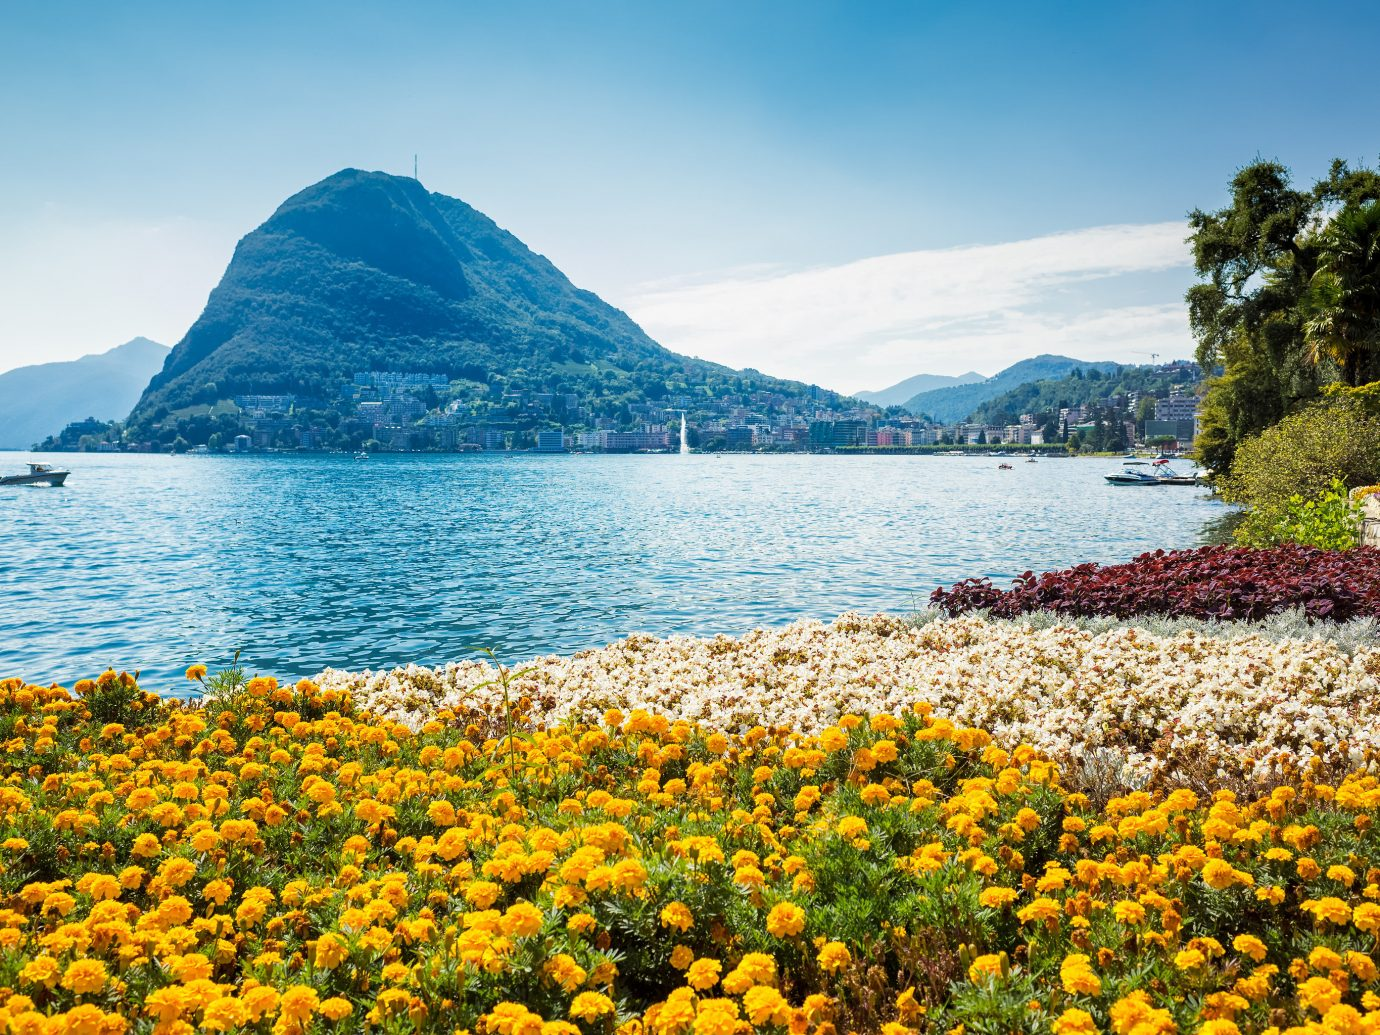 Lakes + Rivers Outdoors + Adventure water outdoor sky mountain Nature mountainous landforms landform geographical feature body of water Lake flower Sea Coast shore horizon landscape Ocean loch bay wildflower fjord mountain range overlooking surrounded Island day